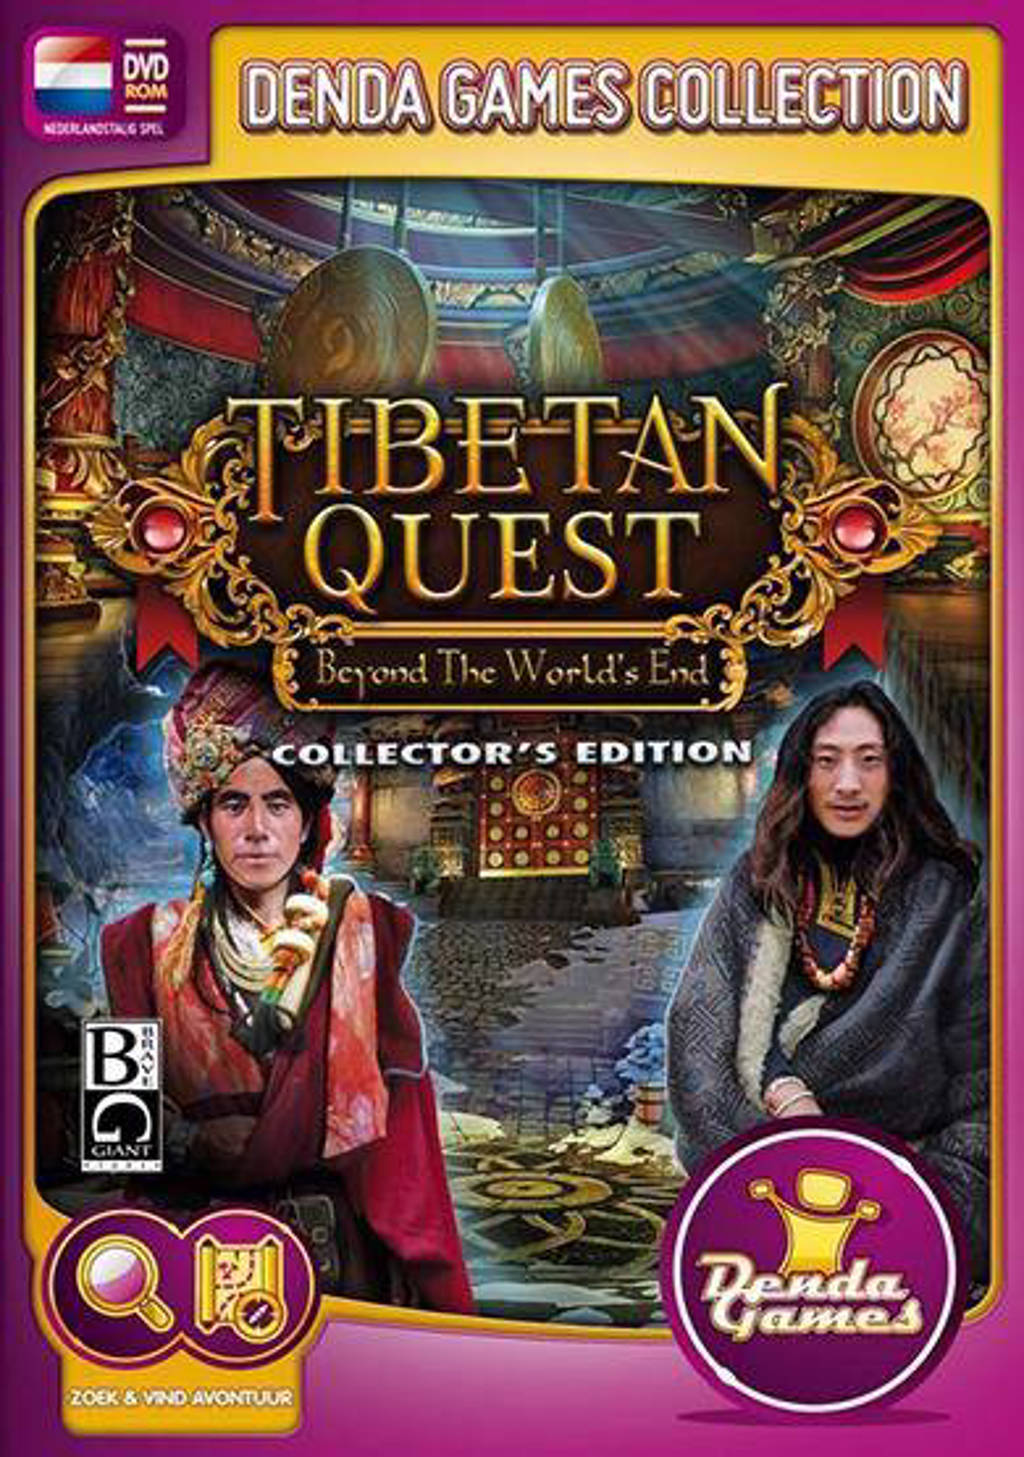 Tibetan quest - Beyond worlds end (Collectors edition) (PC)